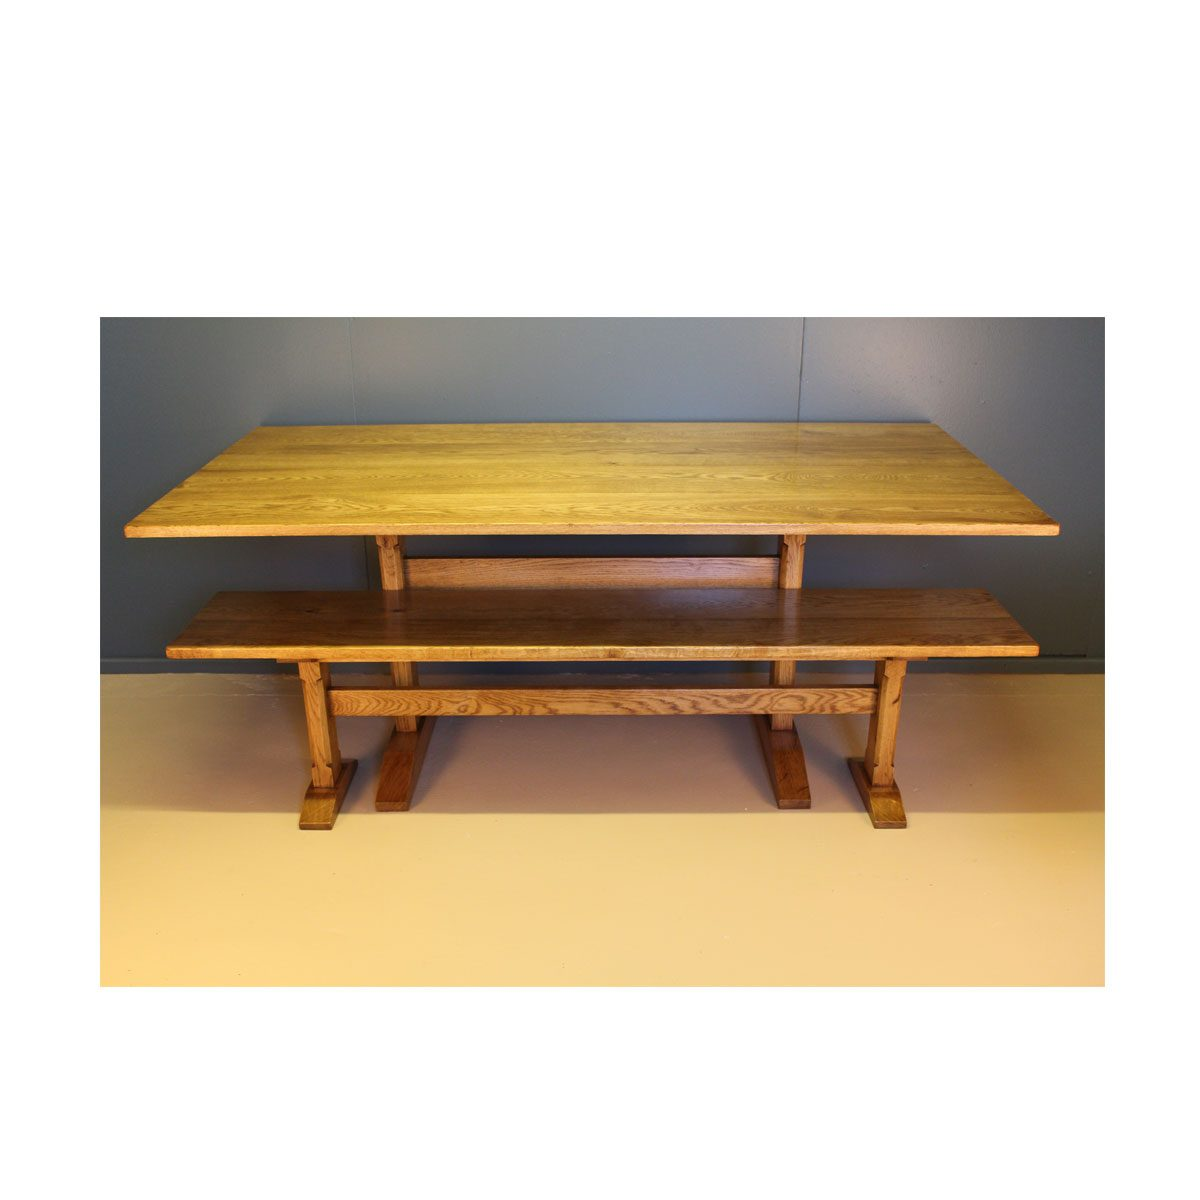 Bespoke Rutland Dining Table Handcrafted in Suffolk